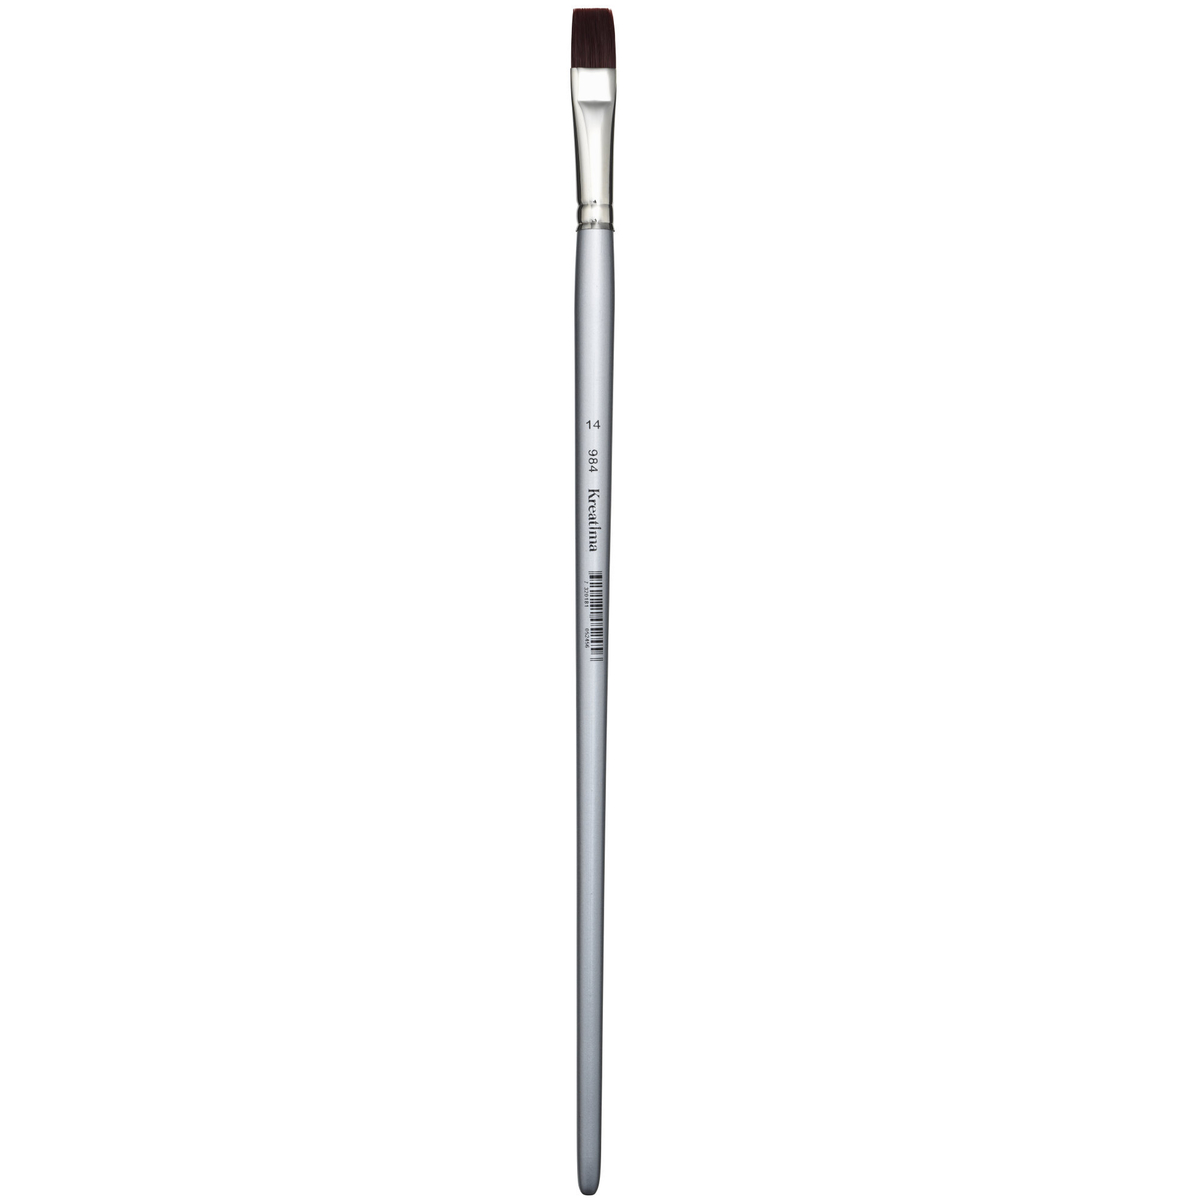 Acrylic Brush Flat 14